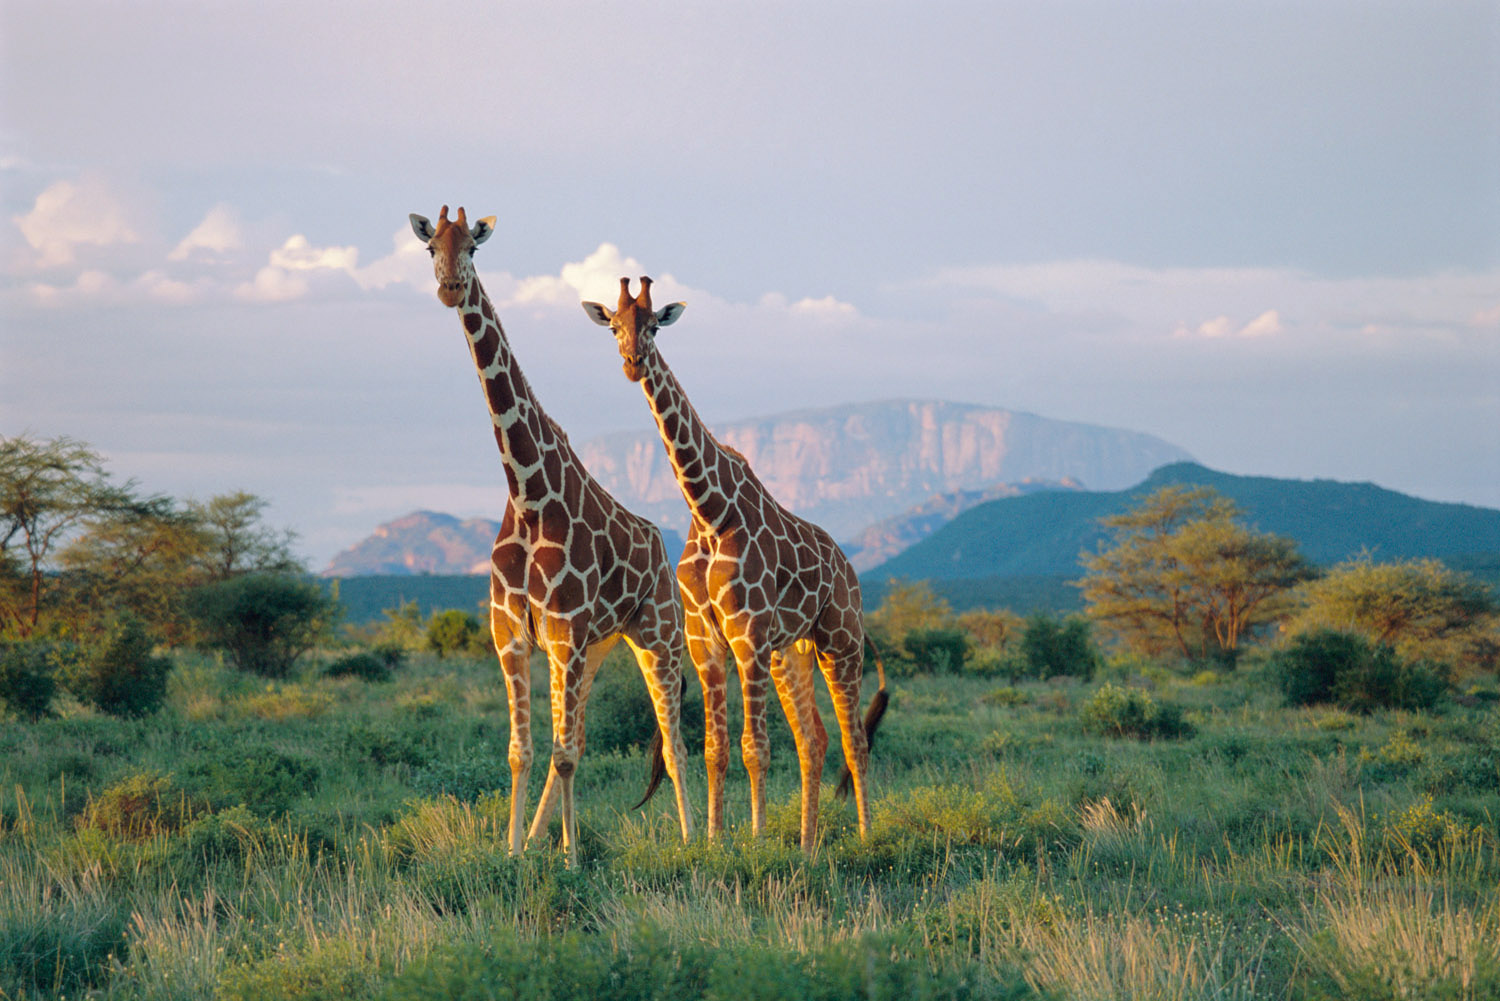 Reticulated giraffes at dusk, Buffalo Springs National Reserve, Kenya